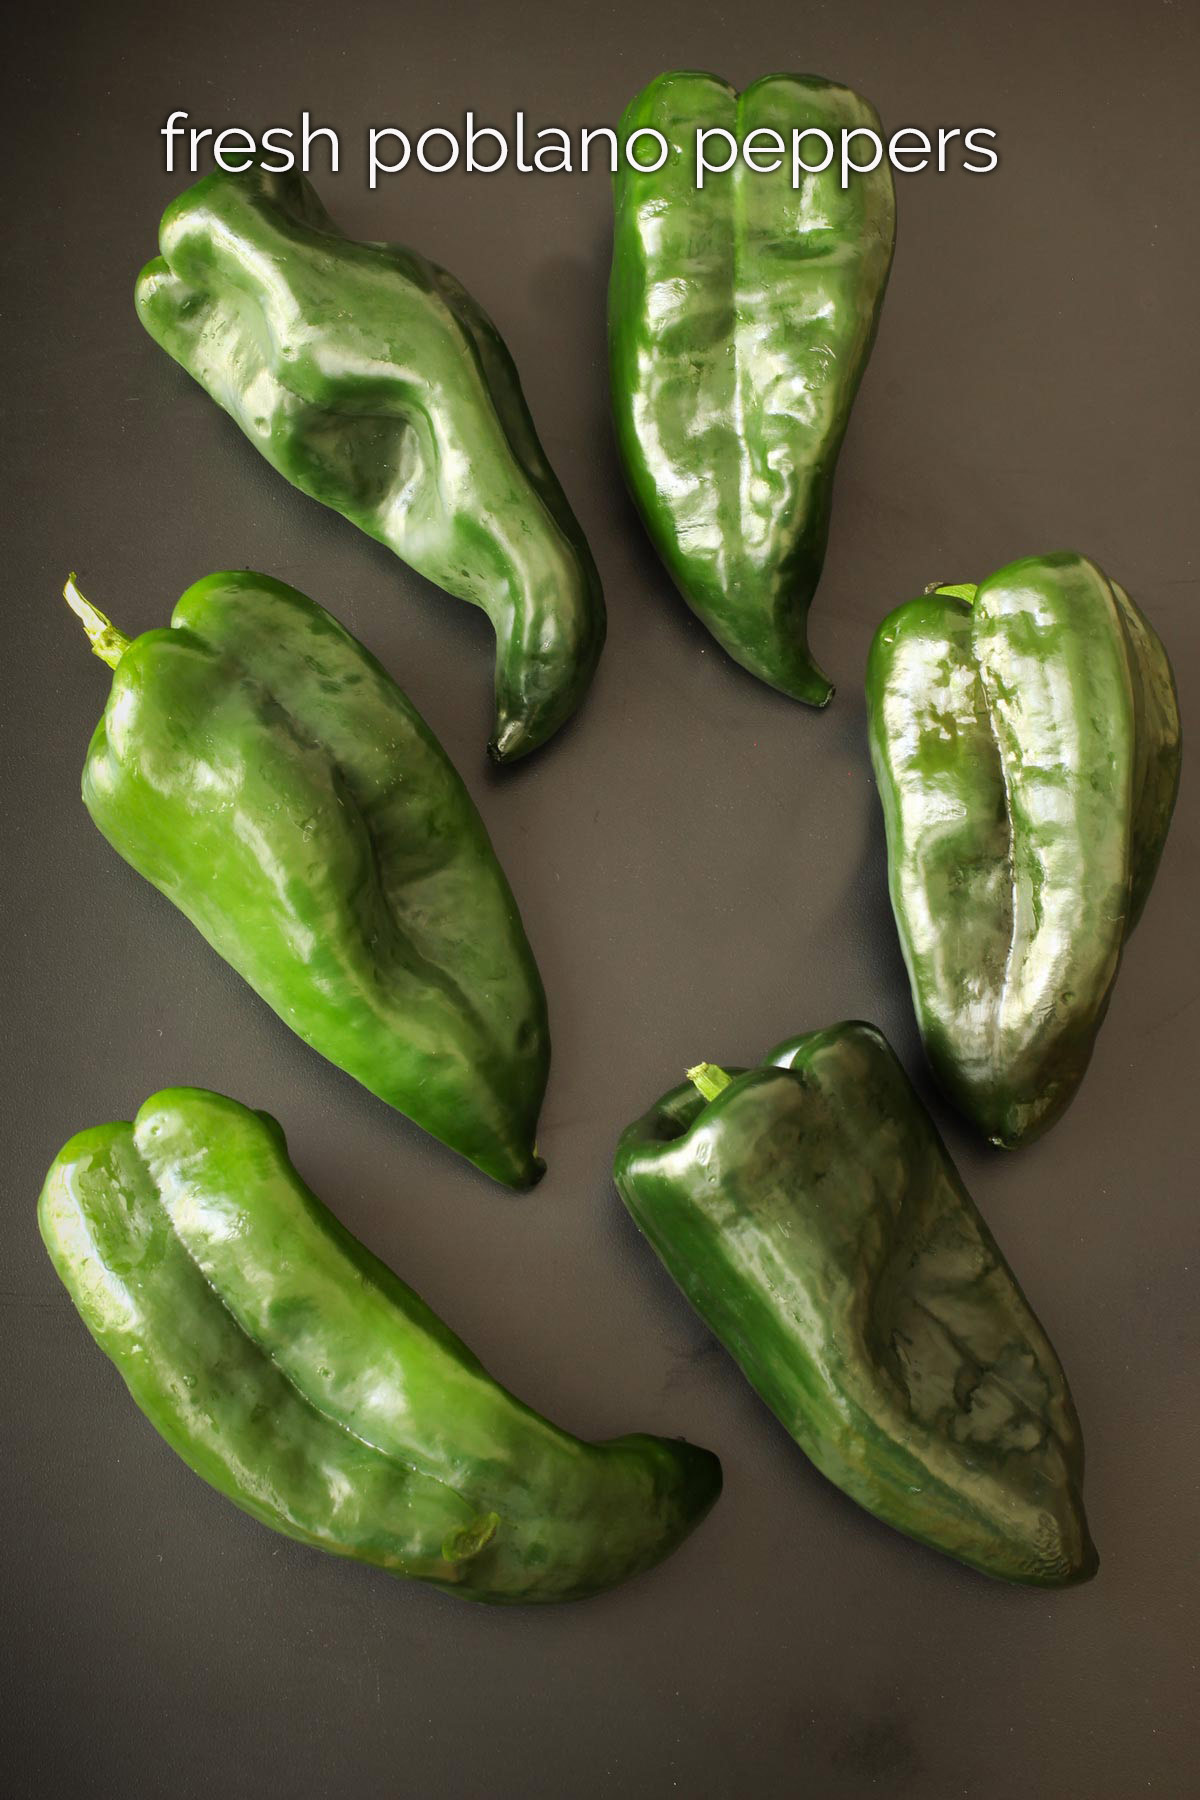 fresh poblano peppers on a black tabletop.